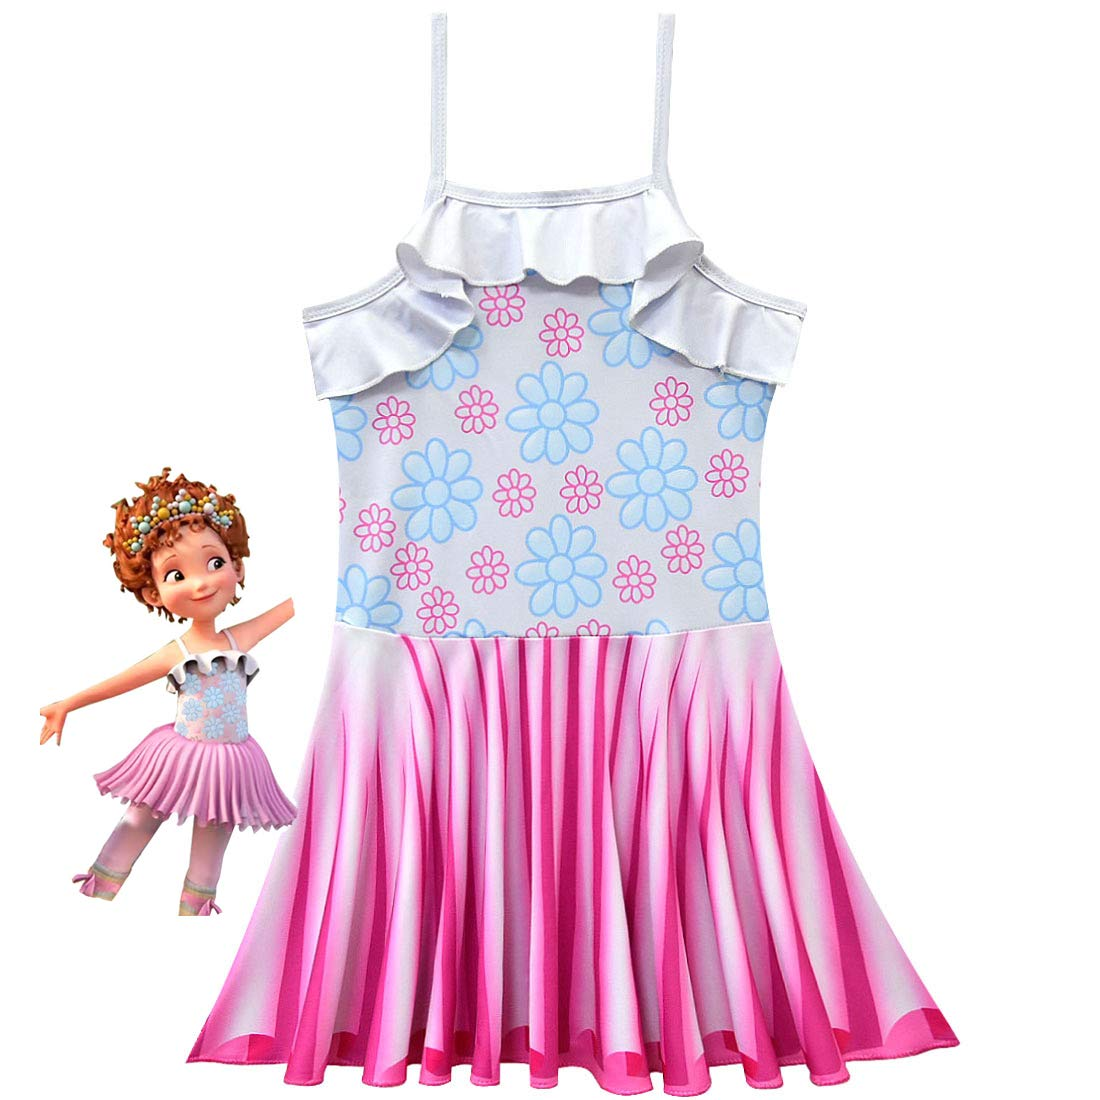 Mssmile Fancy Nancy Costume For Girls Fancy Nancy Ballerina Dress Buy Online In Gibraltar At Gibraltar Desertcart Com Productid 157537016